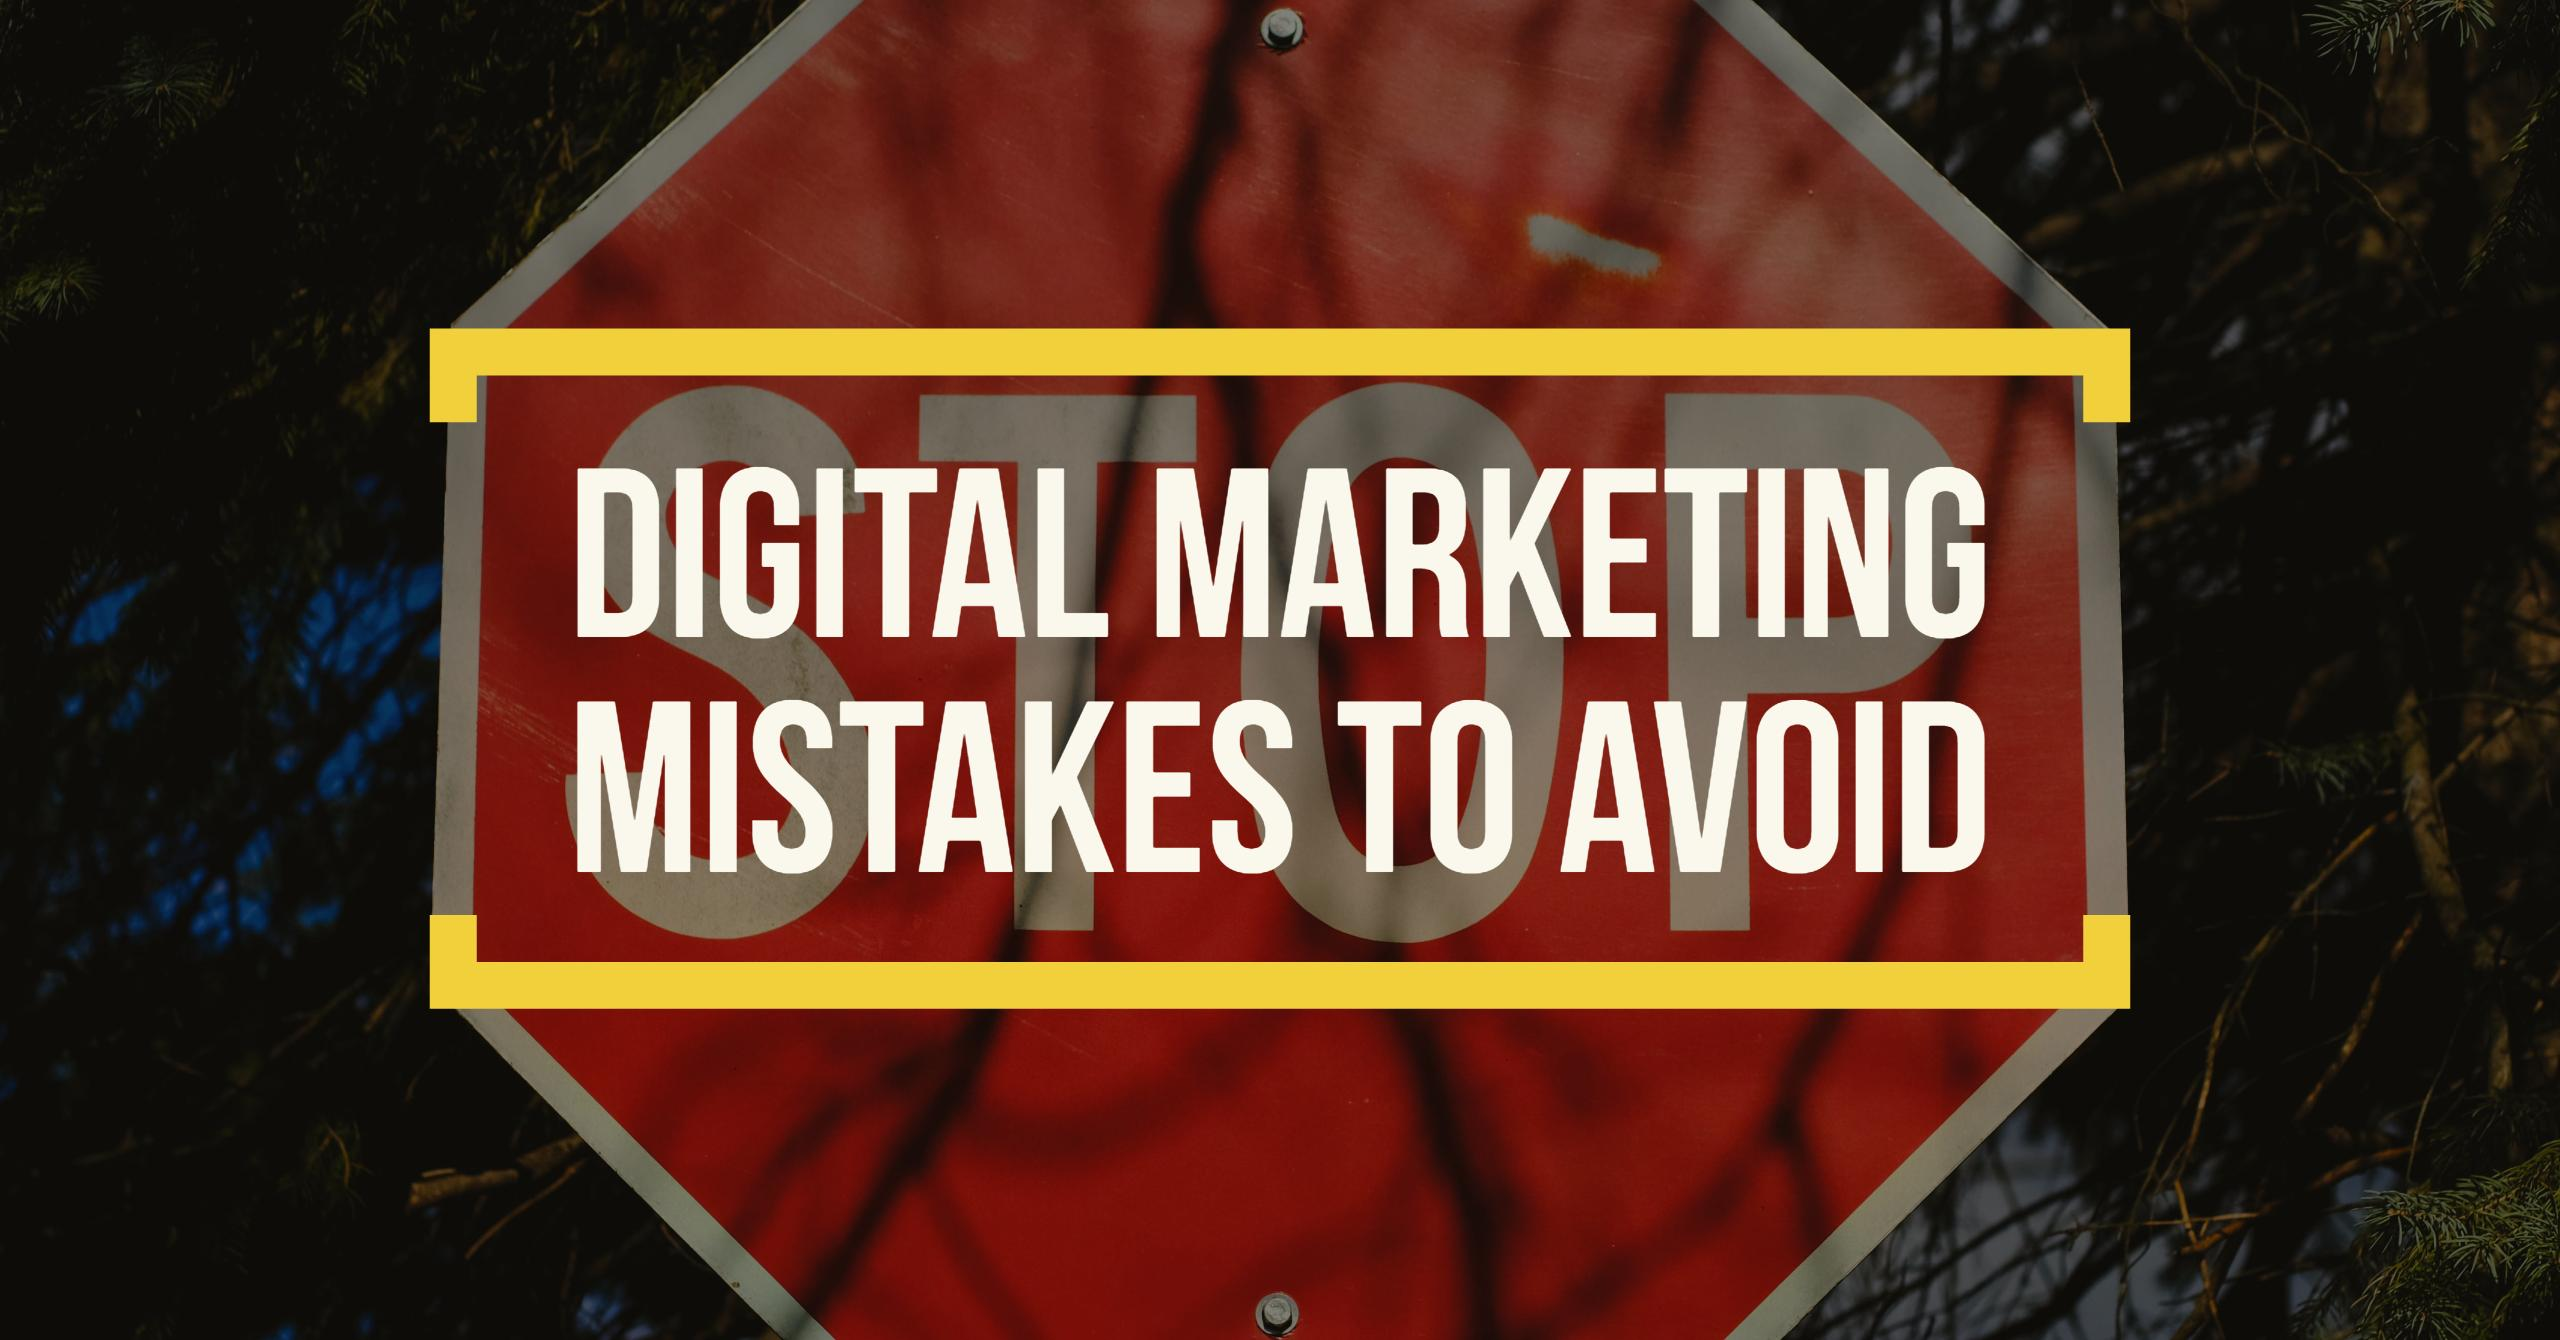 digital marketing mistakes avoid